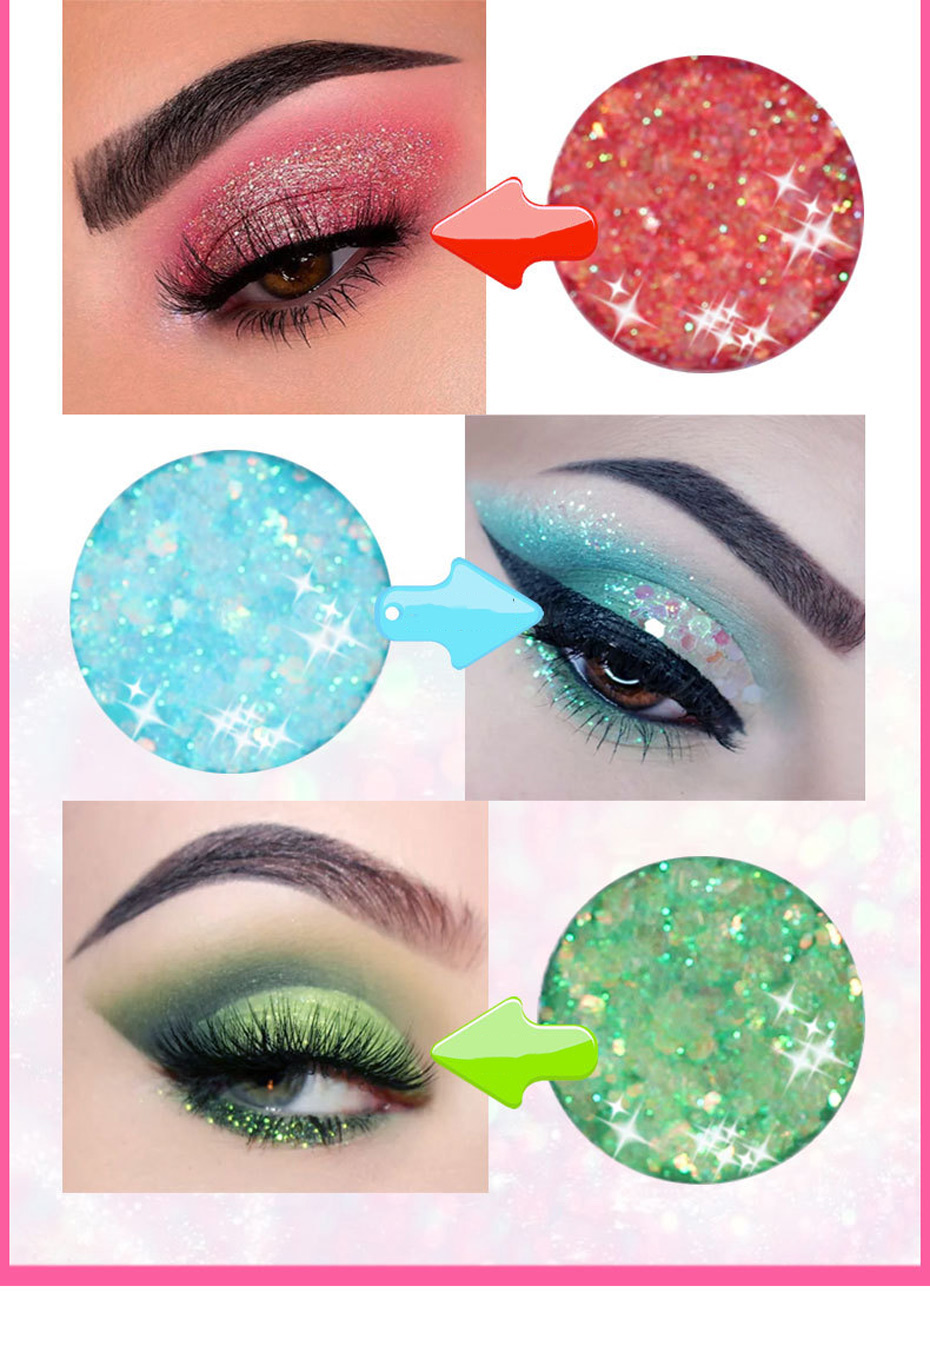 ANYLADY 10 Color Matte Eyeshadow Diamond Glitter Sequin Shimmer Makeup  Rainbow Pigment Palette Professional Party Shadow Kit|Eye Shadow| -  AliExpress